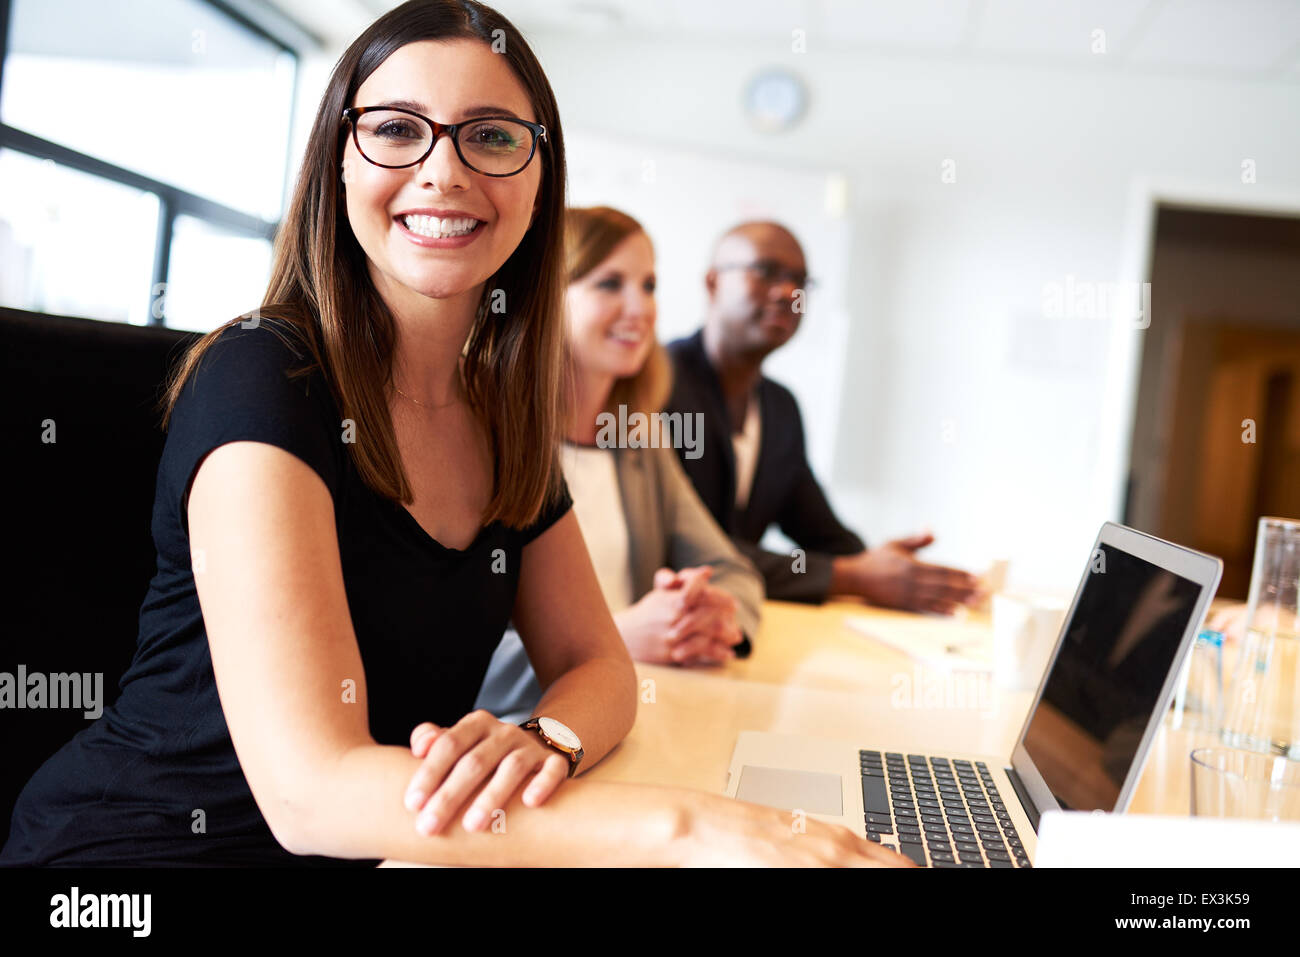 Young female white executive smiling during meeting in office conference room - Stock Image